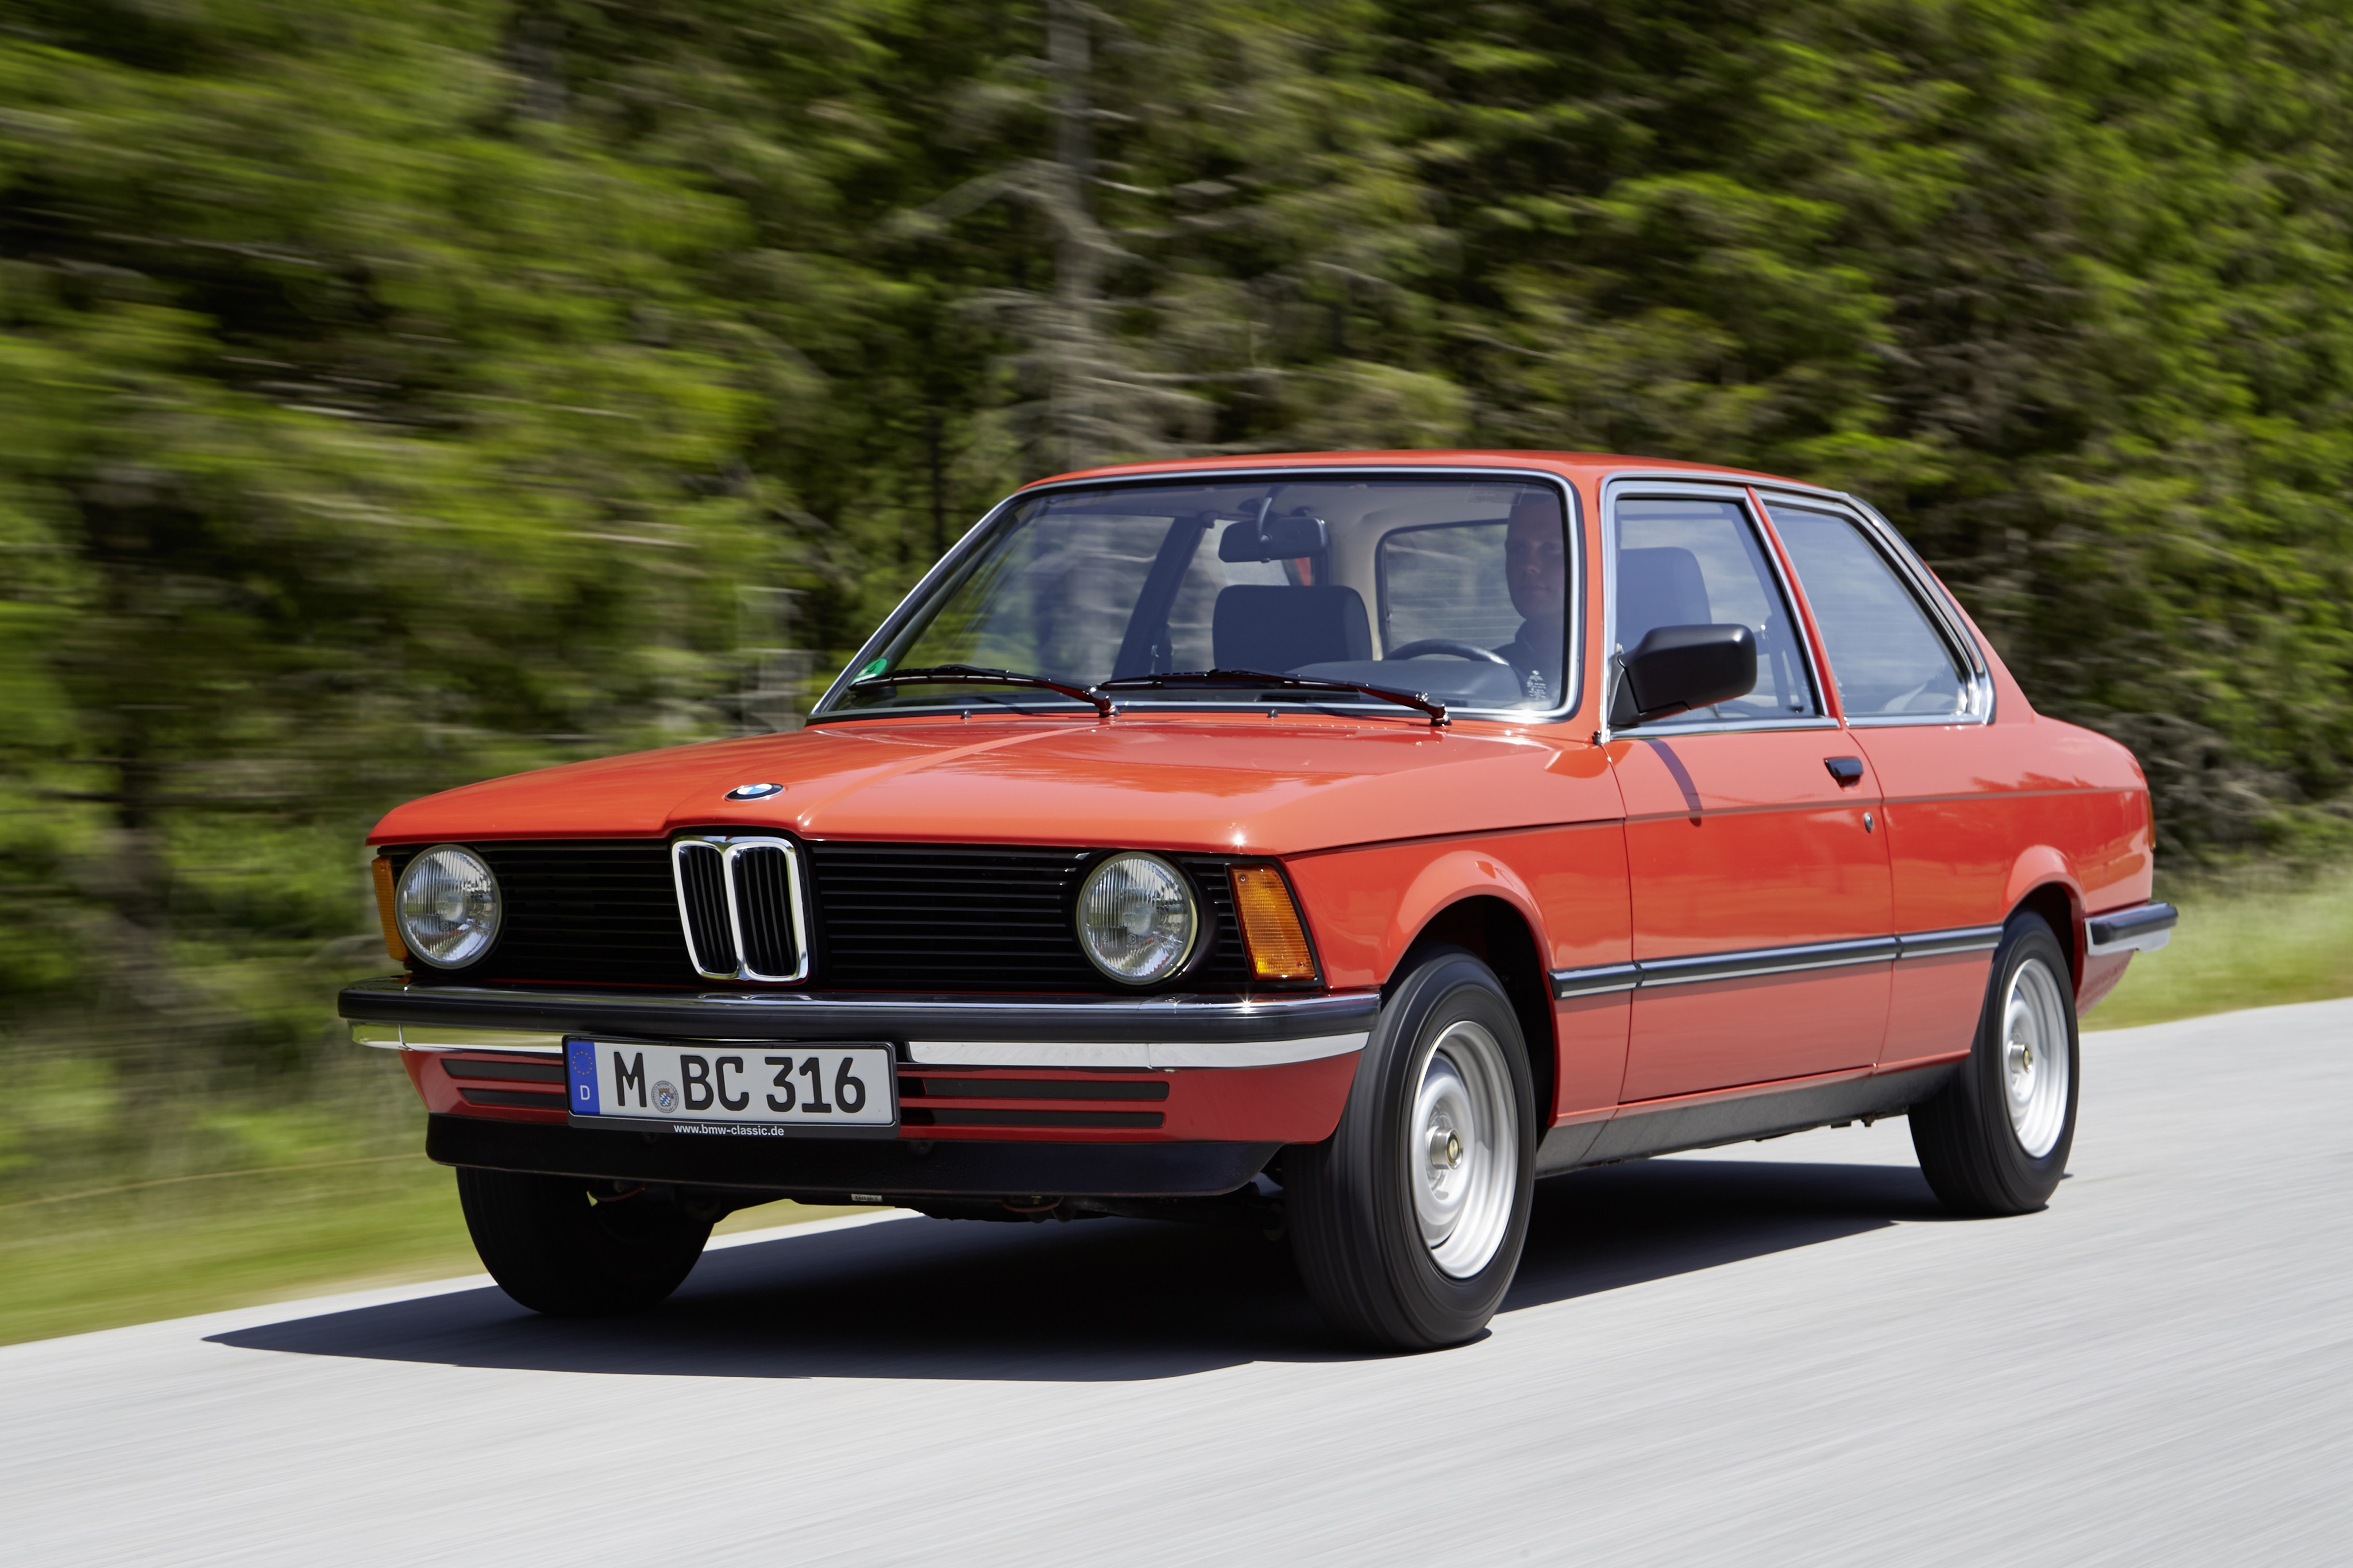 bmw 3 series coupe e21 specs 1975 1976 1977 1978 1979 1980 1981 1982 1983. Black Bedroom Furniture Sets. Home Design Ideas